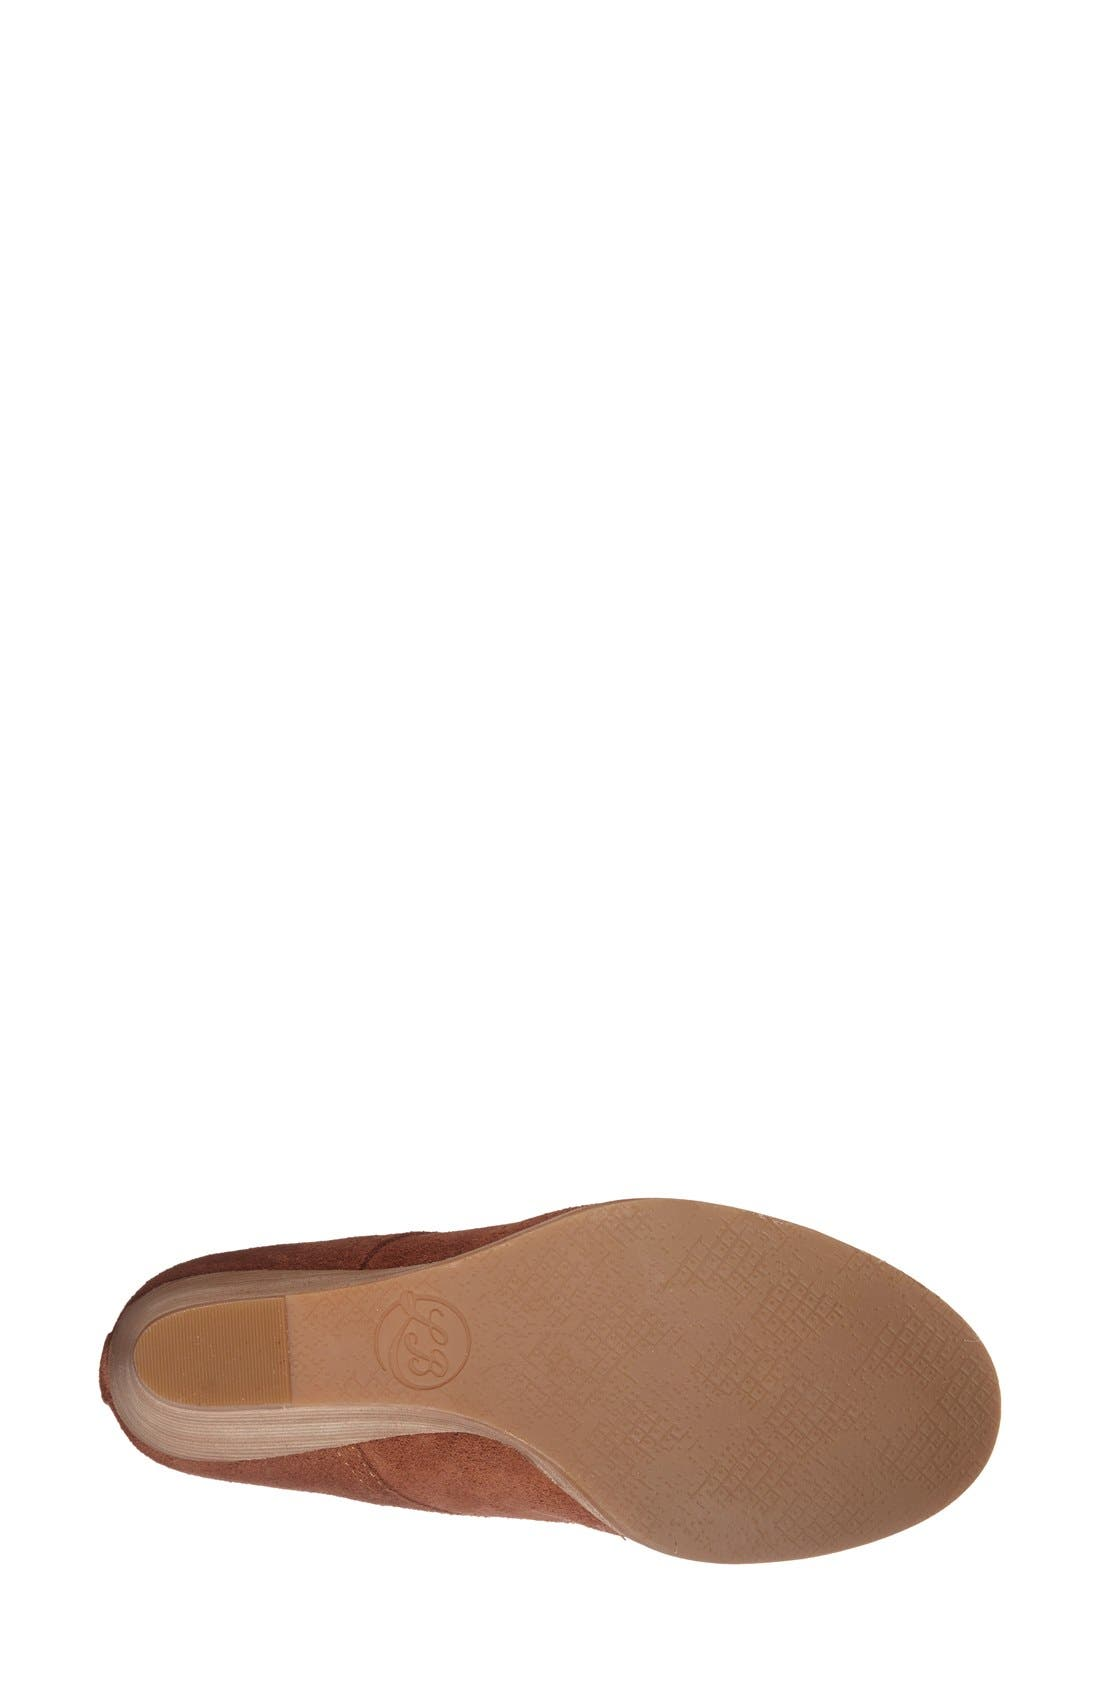 'Yoniana' Wedge Bootie,                             Alternate thumbnail 12, color,